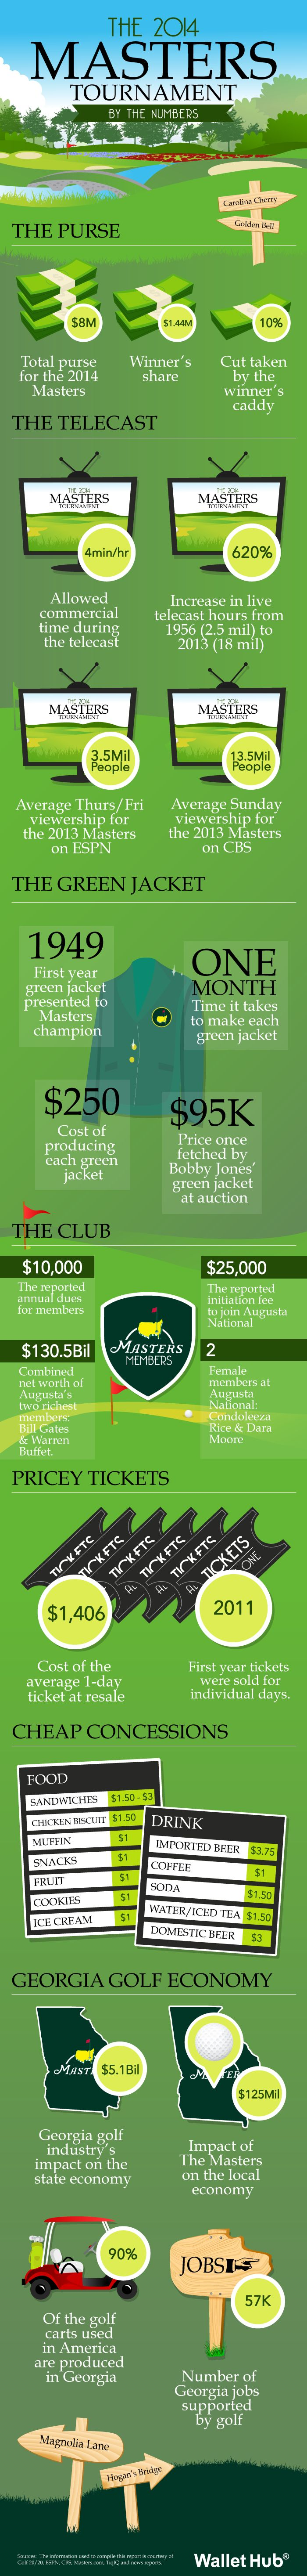 Masters By The Numbers